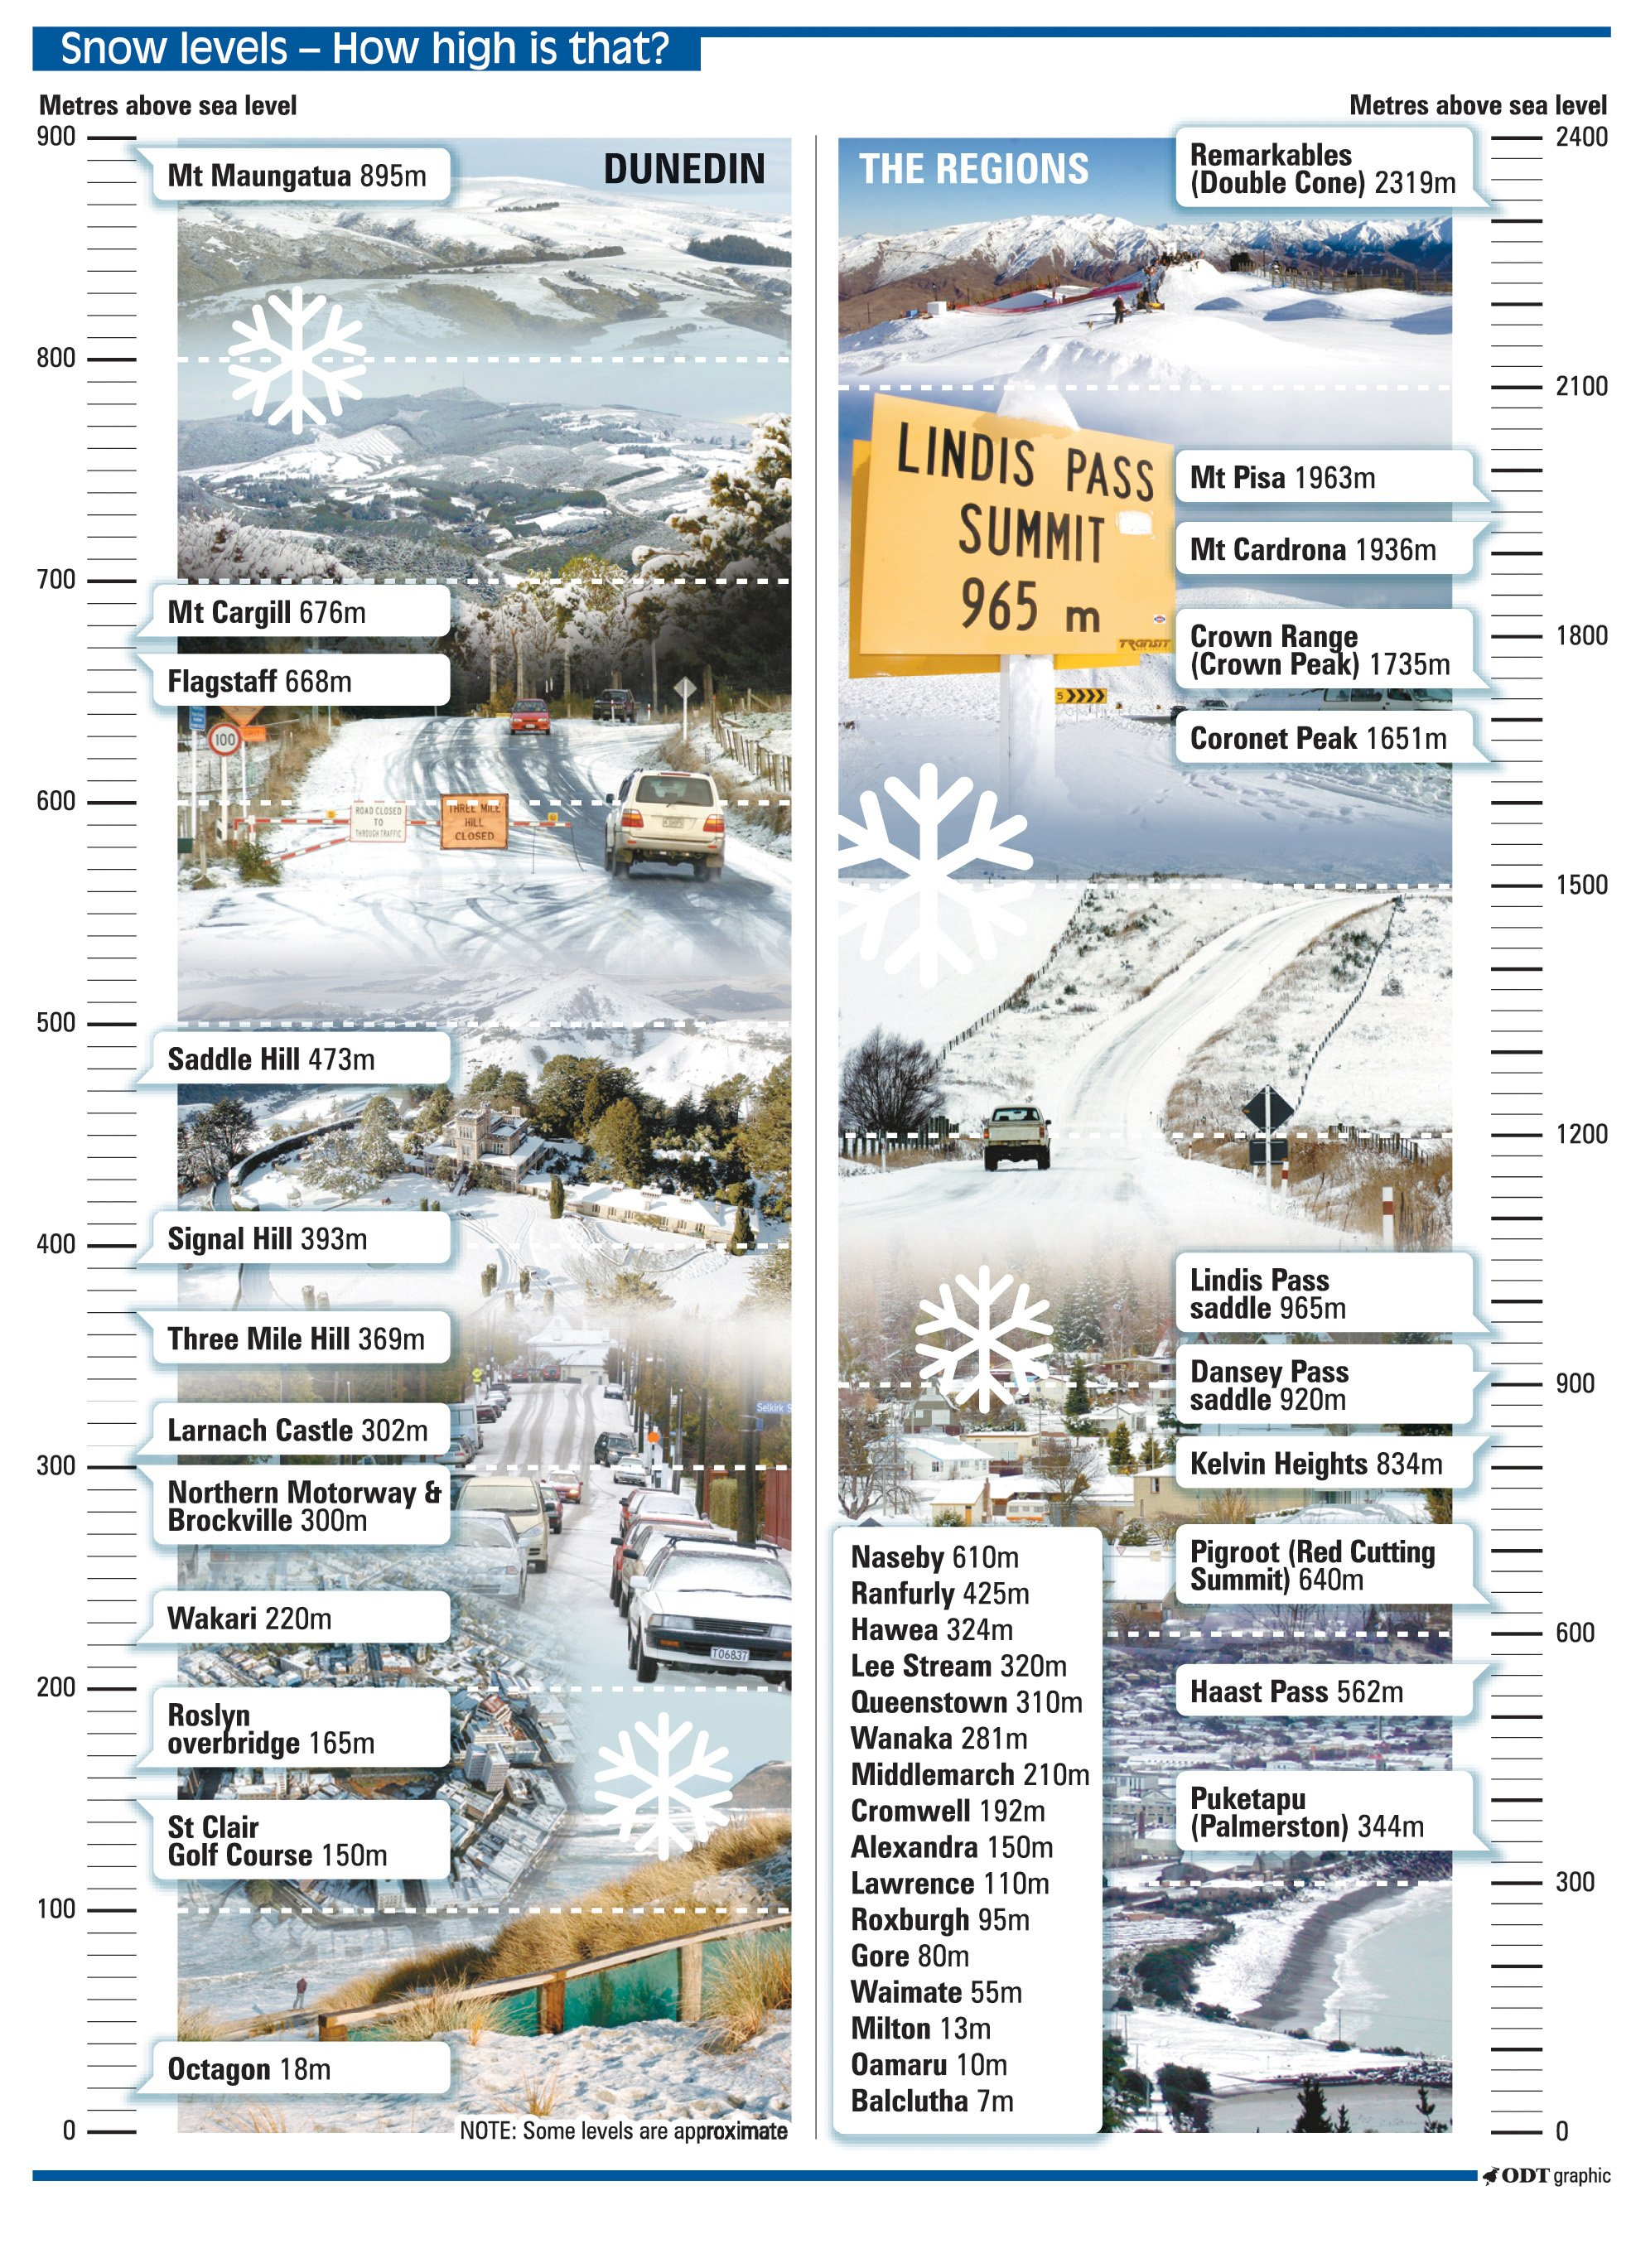 ODT snow levels guide: Click to enlarge graphic